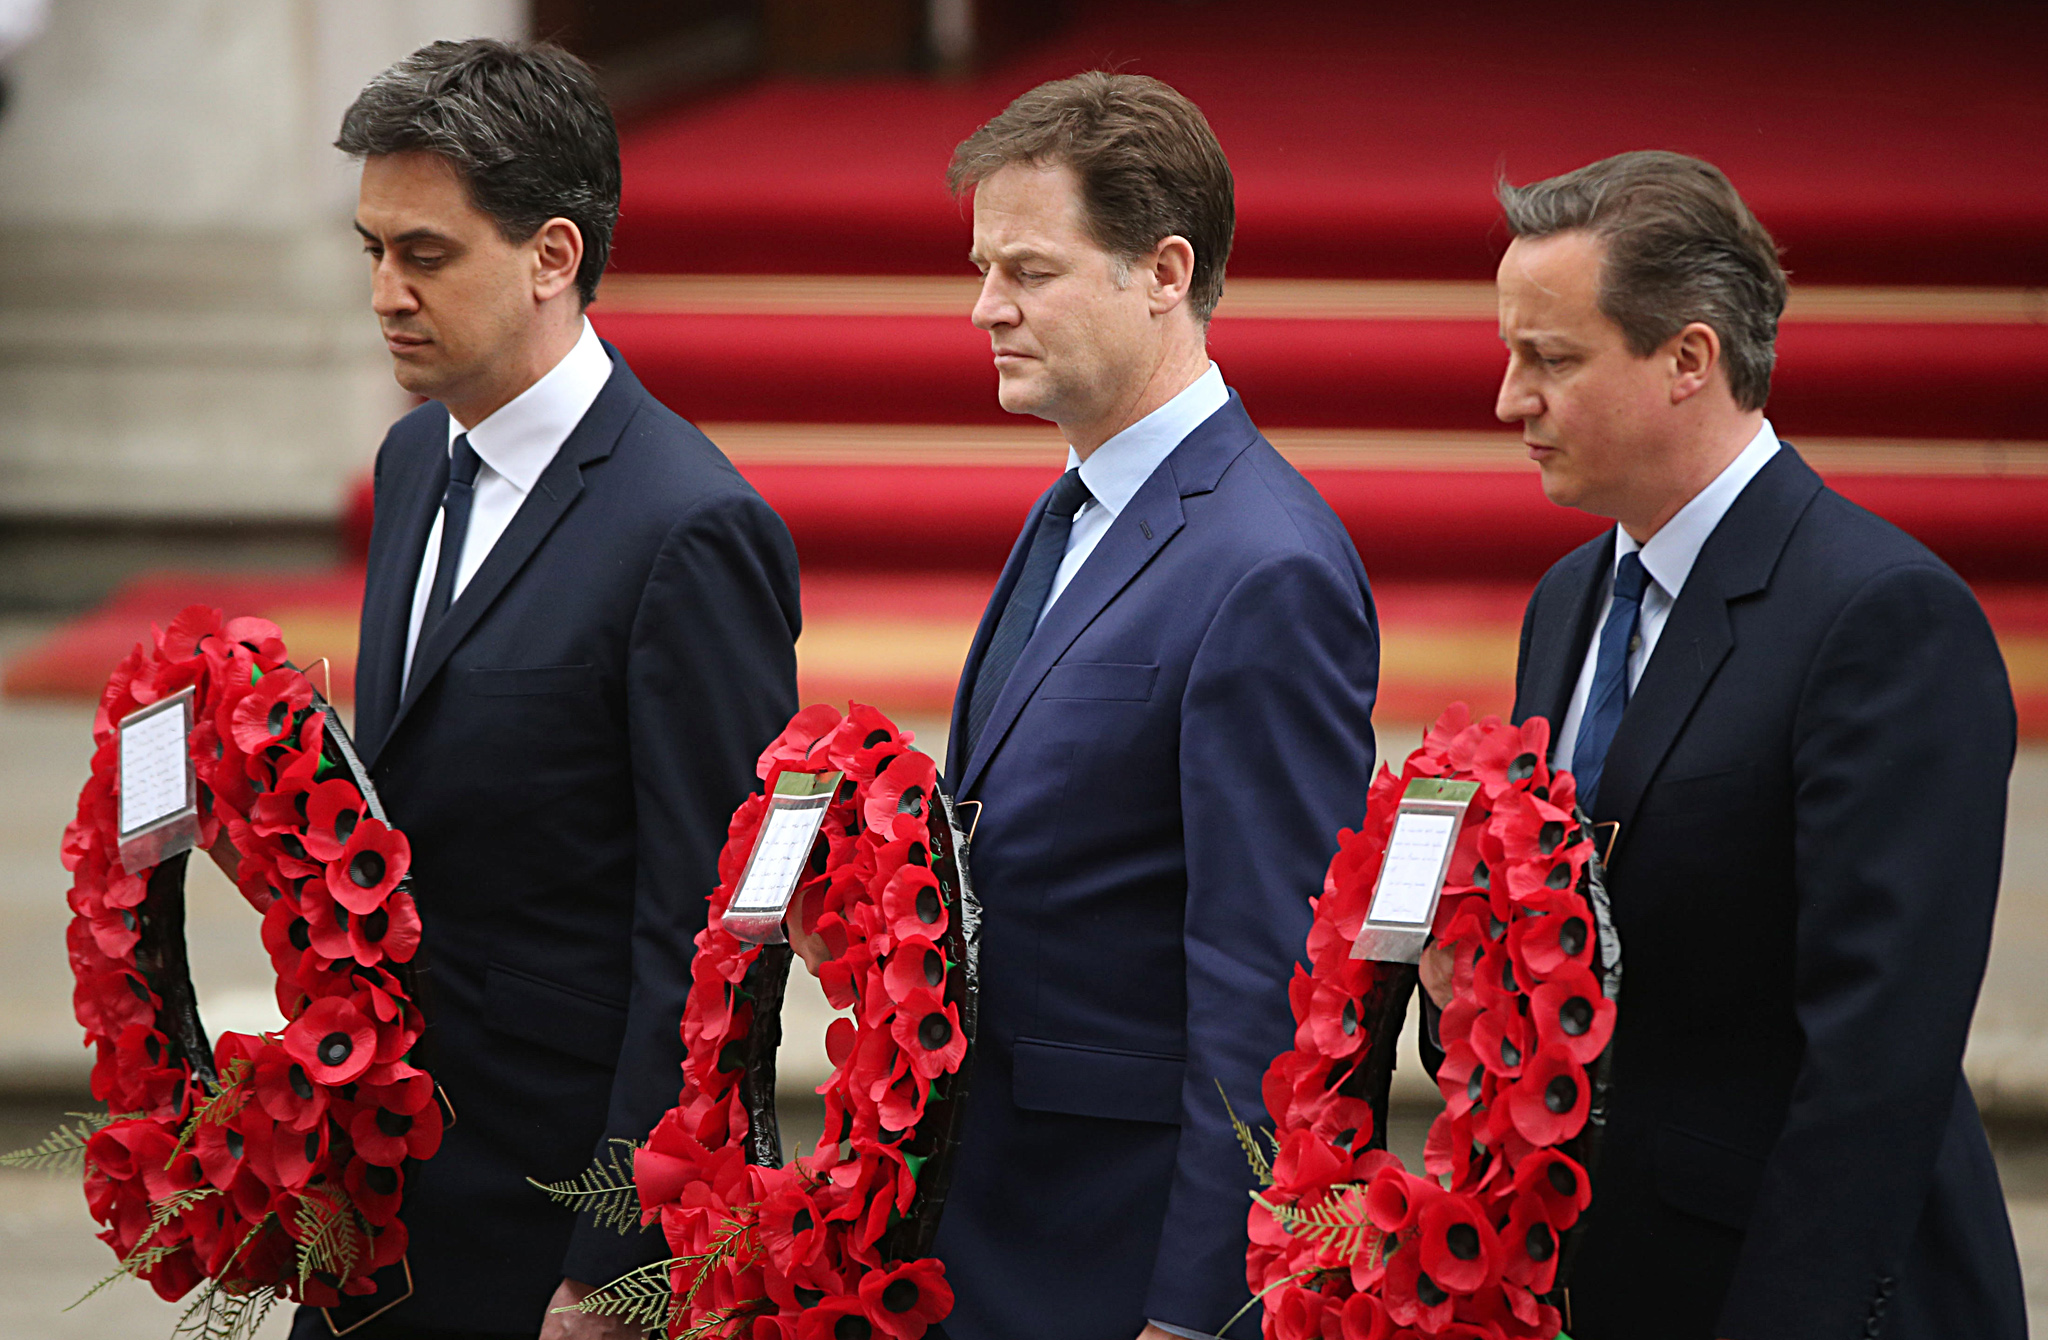 VE Day 70th Anniversary Day One...LONDON, ENGLAND - MAY 08:  (L-R) Labour Party leader Ed Miliband, Liberal Democrat leader Nick Clegg and Prime Minister David Cameron prepare to place a wreath during a tribute at the Cenotaph to begin three days of national commemorations to mark the 70th anniversary of VE Day on May 8, 2015 in London, England. Leaders of the United Kingdom are gathering together after the country went to the polls yesterday and voted to keep Conservative party leader David Cameron as Prime Minister. Great Britain now starts three days of national commemorations of street parties, concerts and other events across the country to remember the end of World War II in Europe.  (Photo by Christopher Furlong/Getty Images)